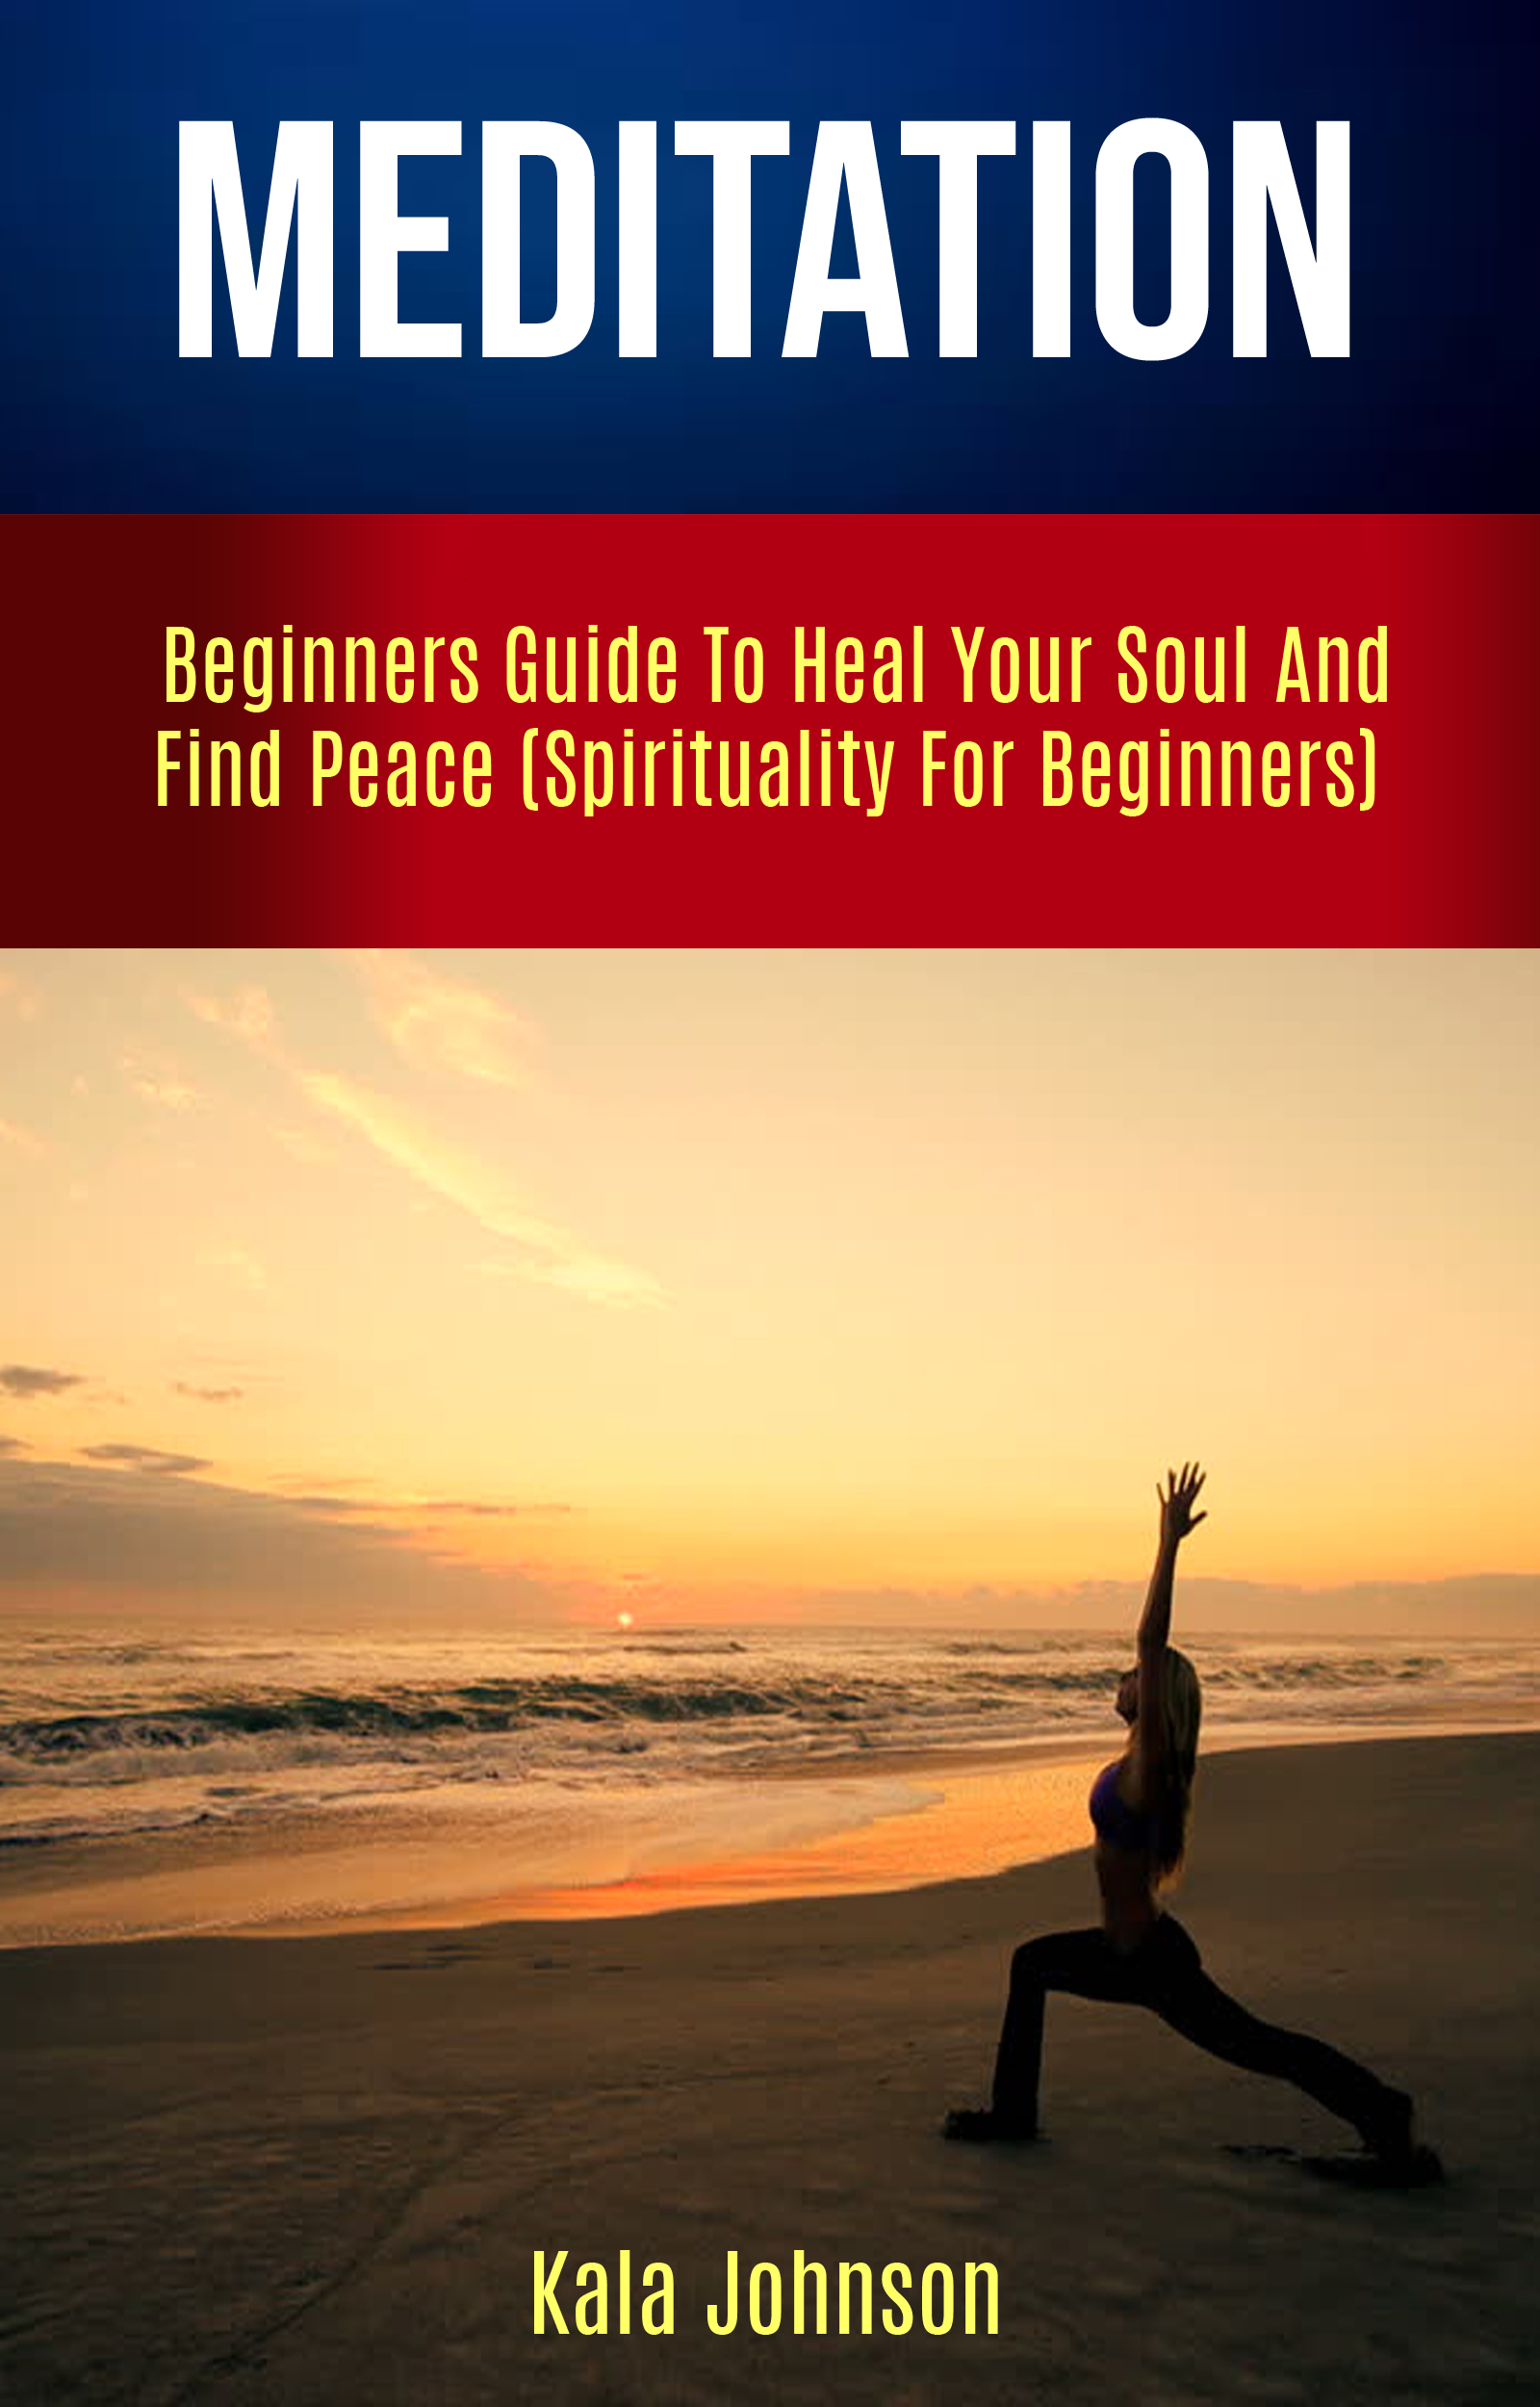 Meditation: beginners guide to heal your soul and find peace (spirituality for beginners)